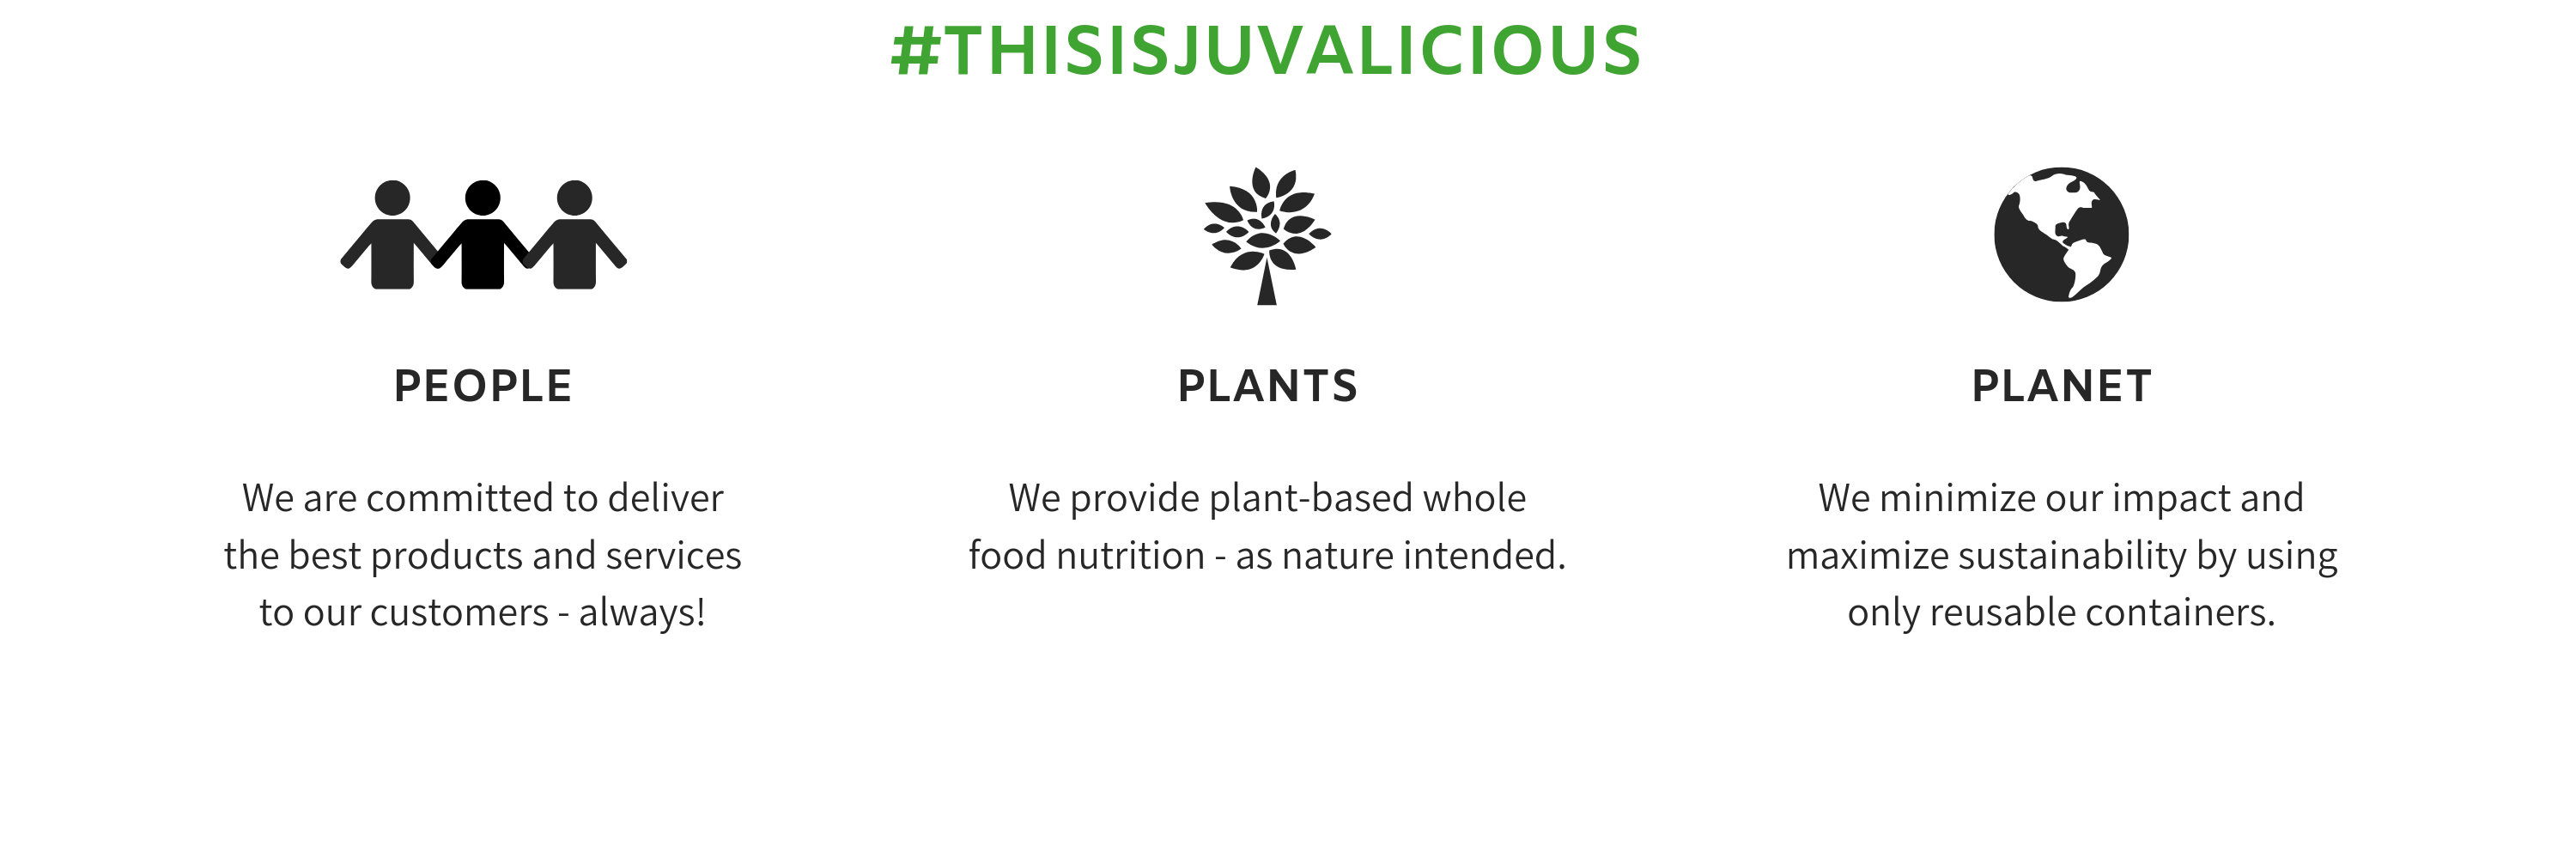 Juvalicious Values People Plants Planet